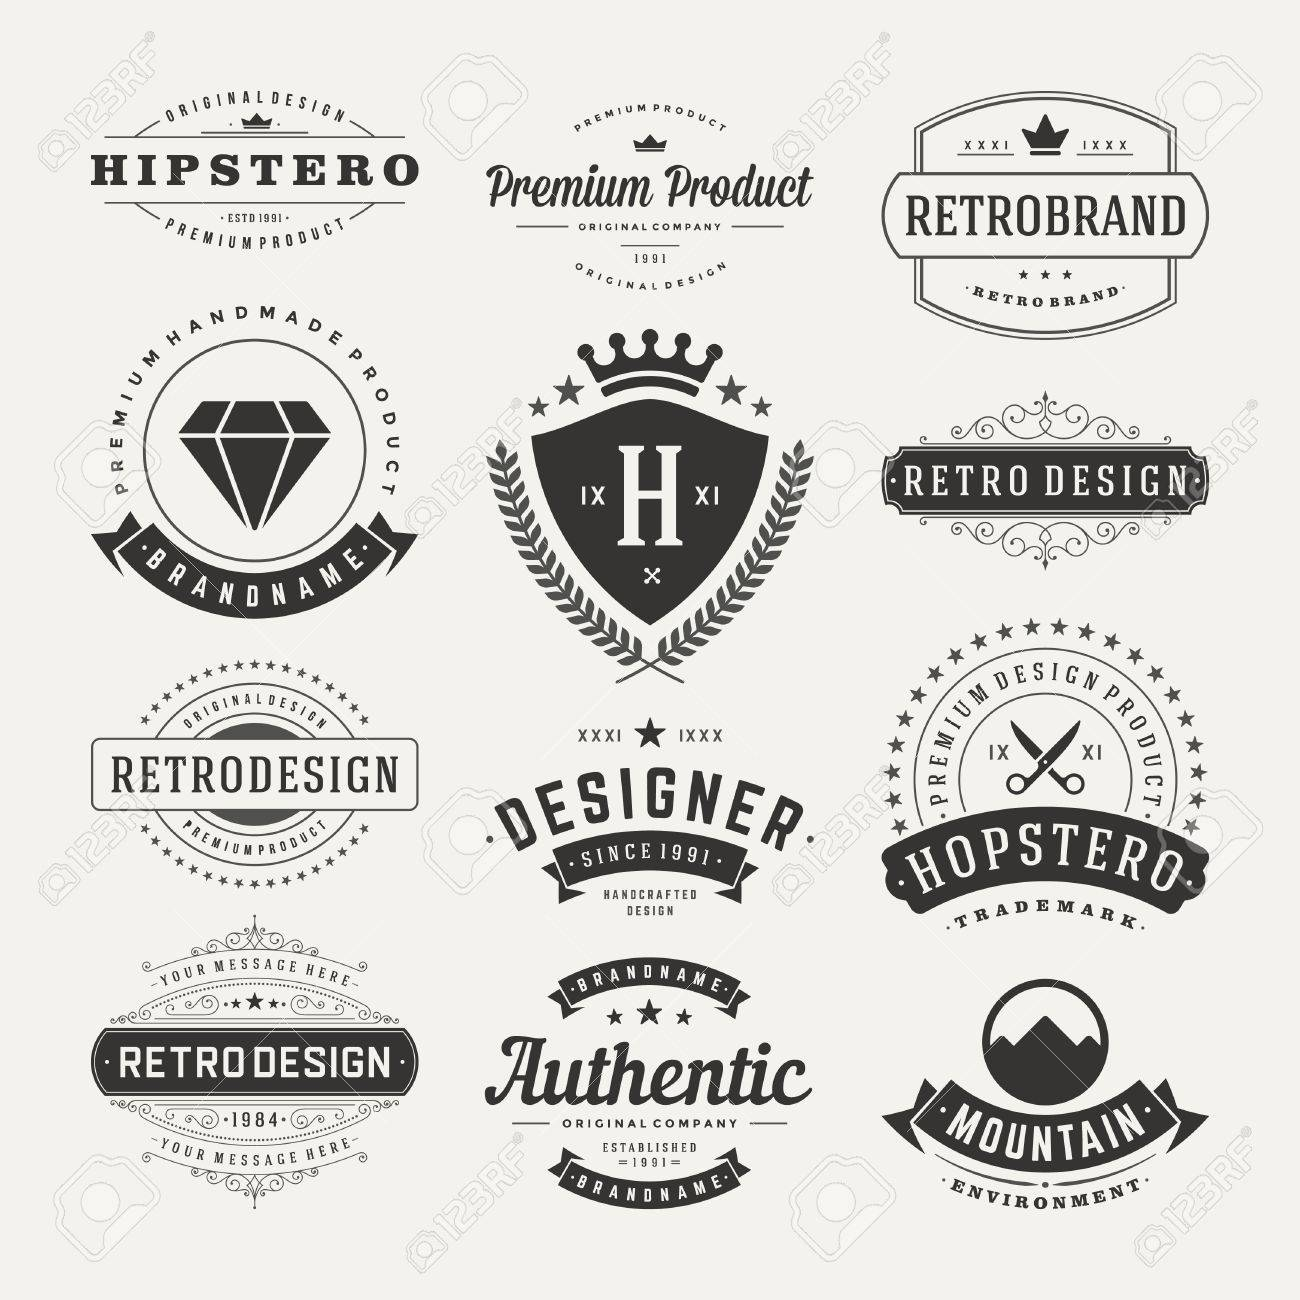 Retro Vintage Insignias or icons set. Vector design elements, business signs, icons, identity, labels, badges and objects. Stock Vector - 33256695